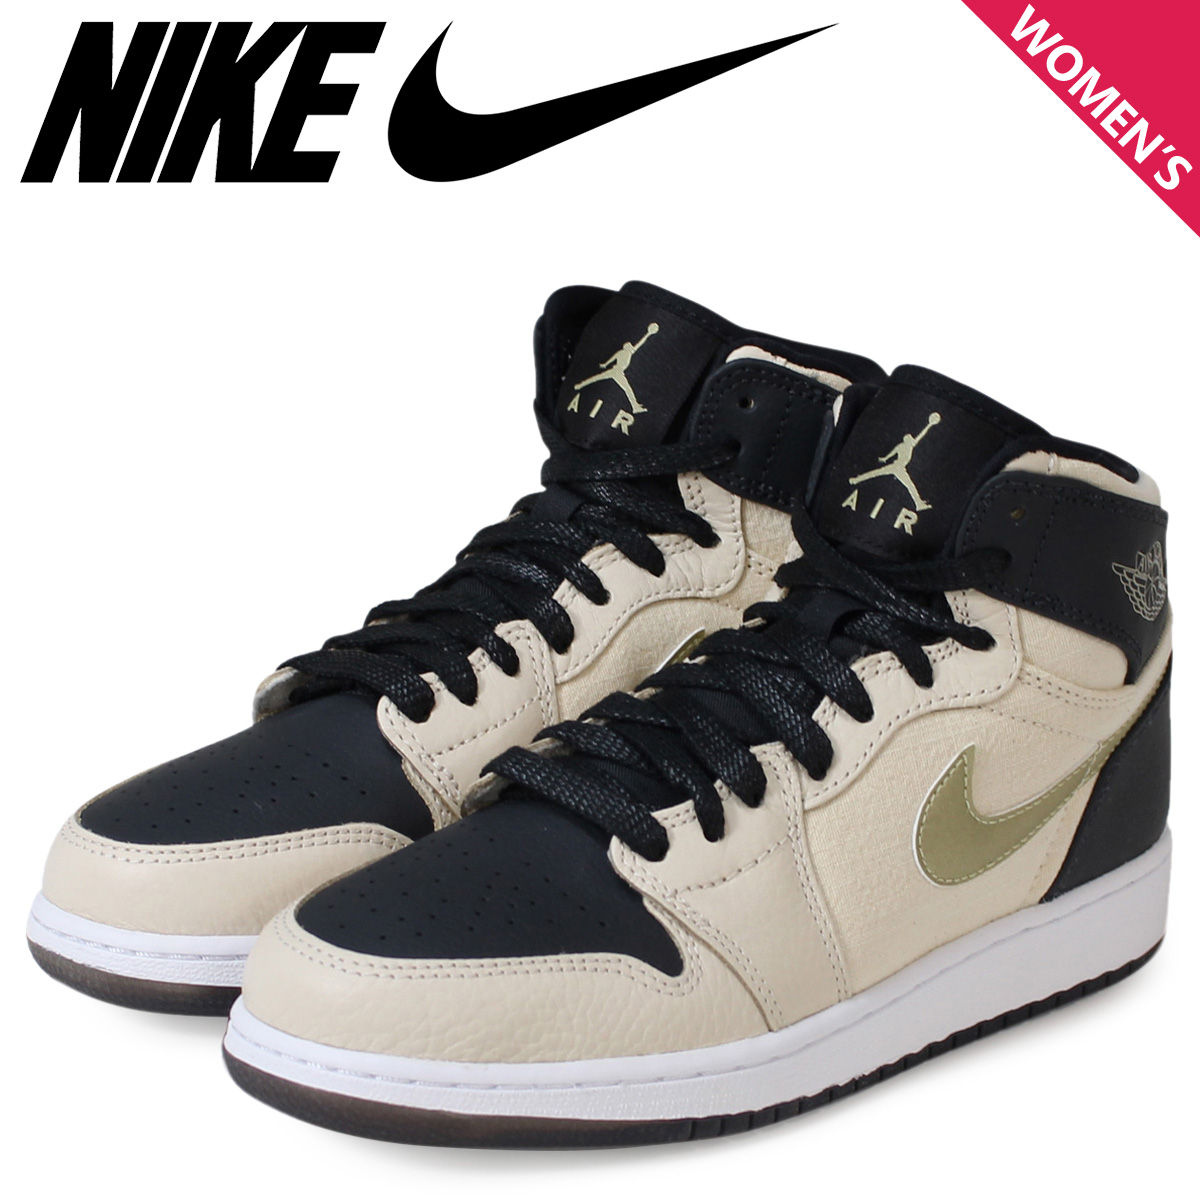 Nike Air Jordan Lady S Nike Sneakers Jordan 1 Ret Hi Prm Hc Gg Air Jordan 1 832 596 209 Shoes Brown